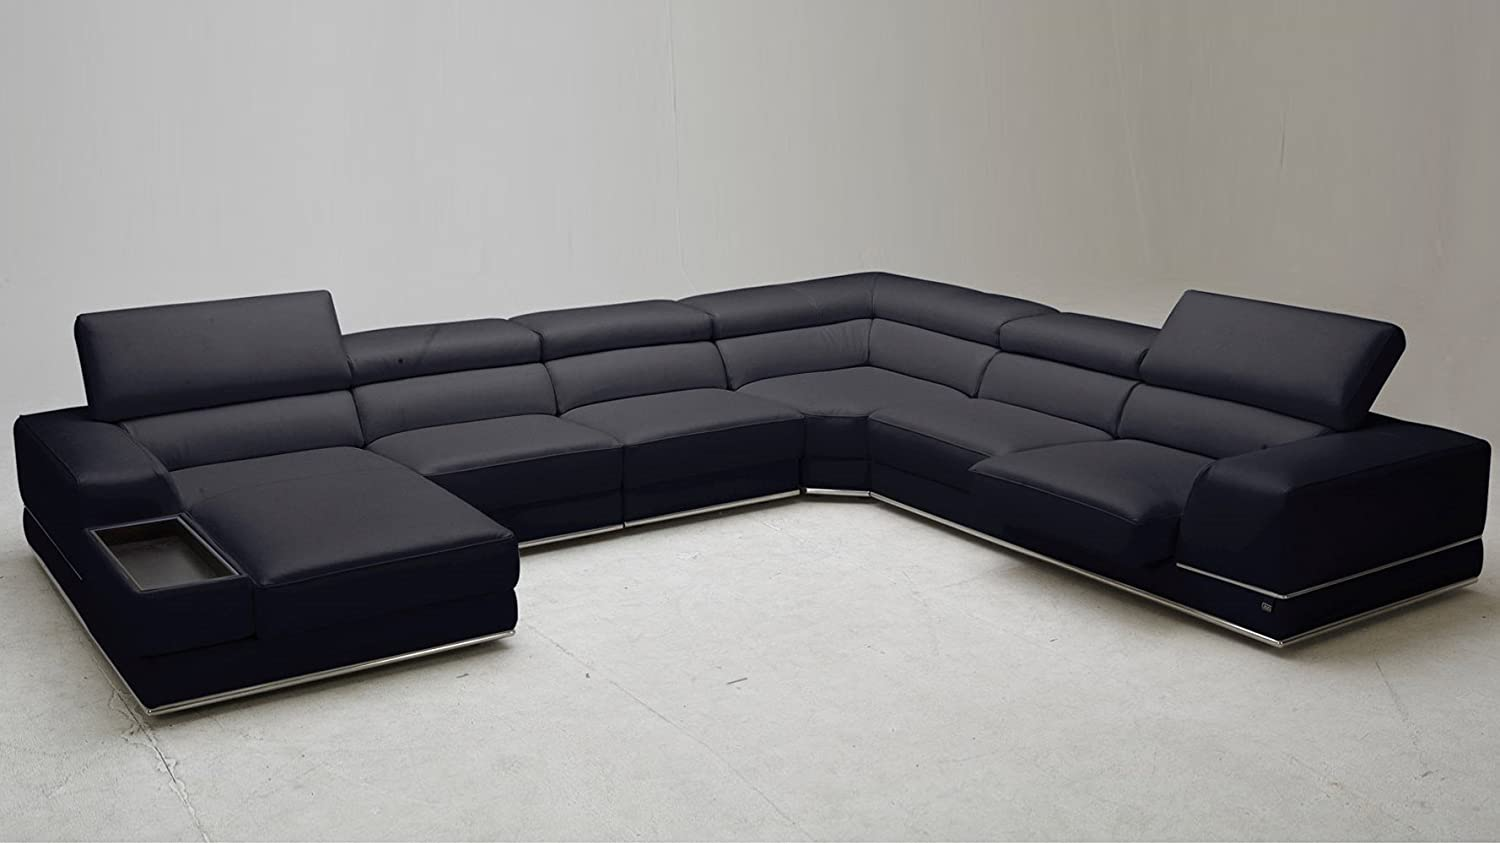 Amazon.com: Zuri Furniture Wynn Black Leather Sectional Sofa With  Adjustable Headrests   Left Chaise: Kitchen U0026 Dining